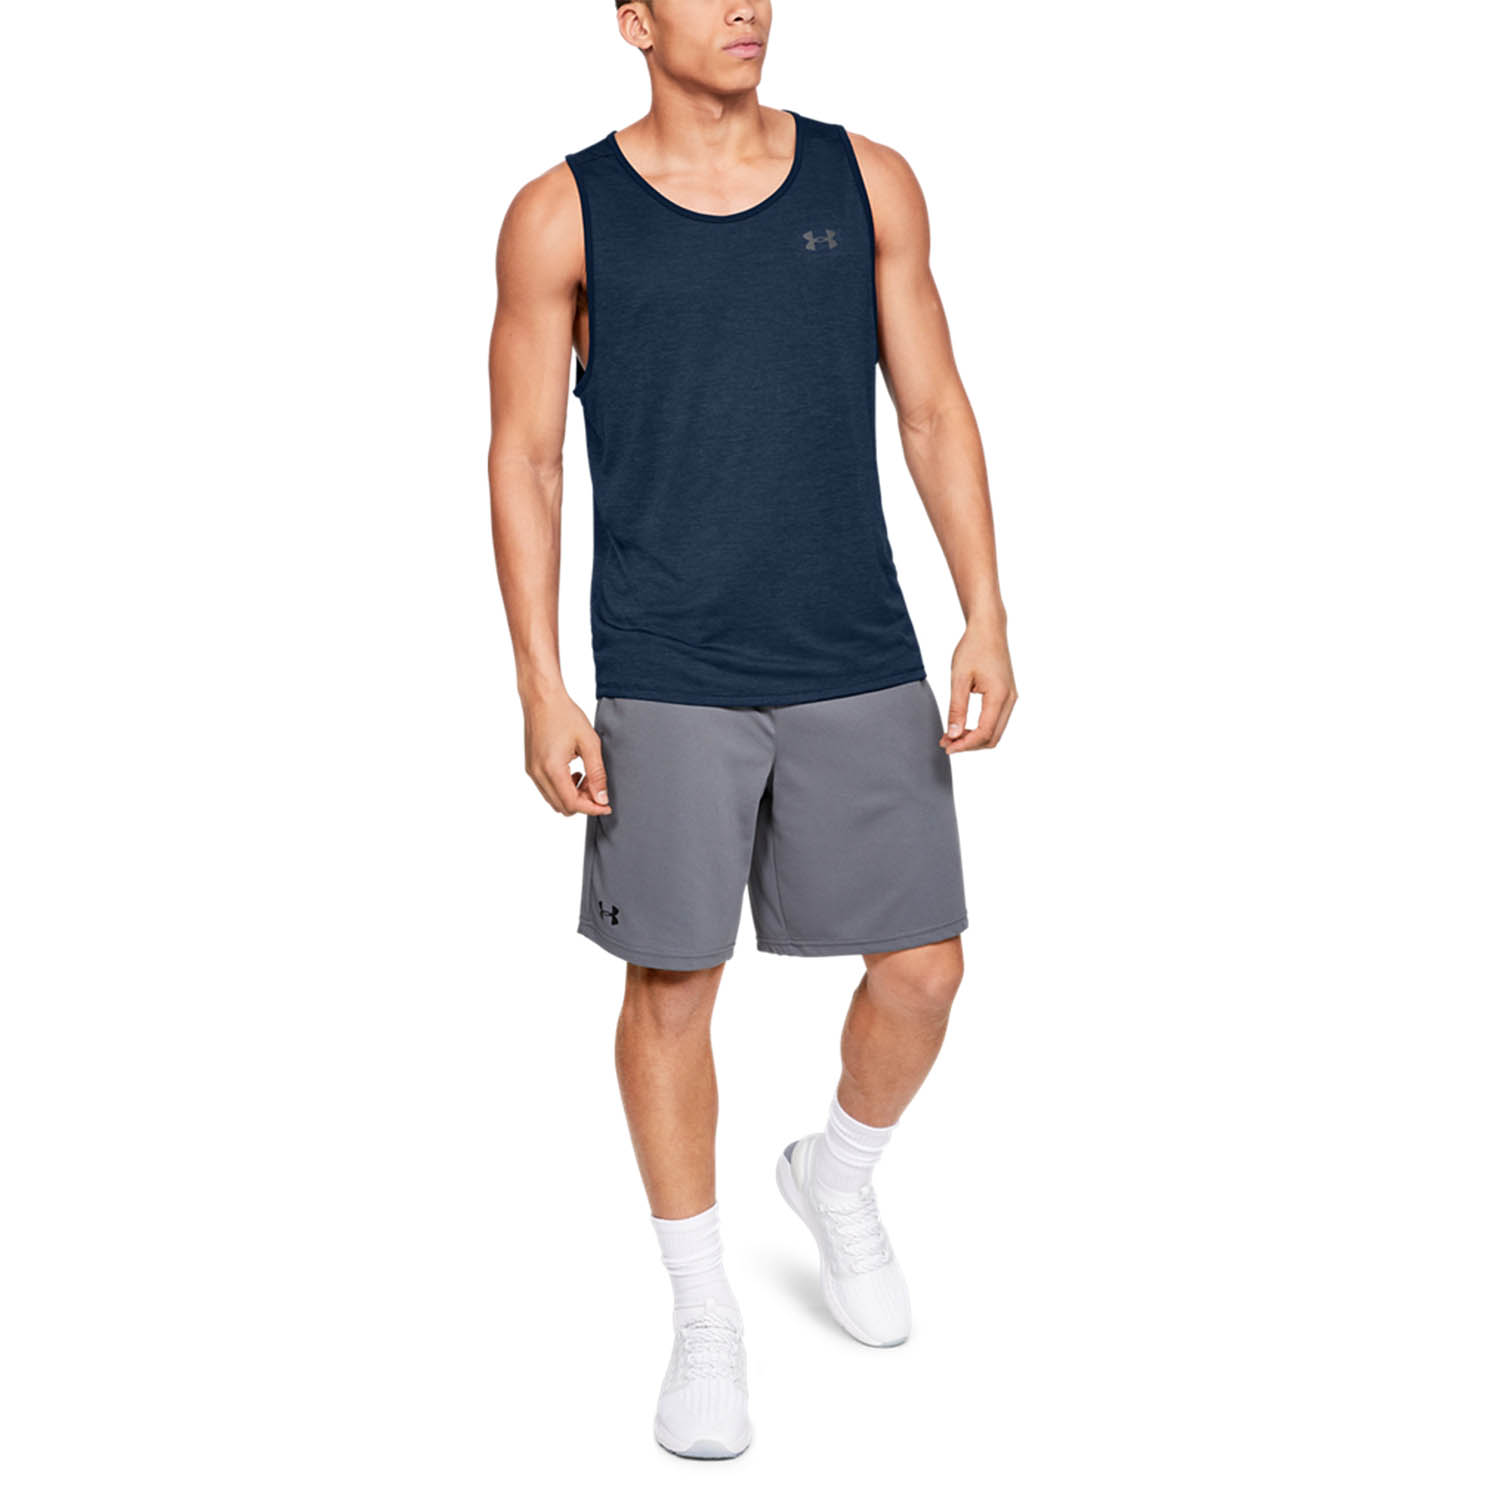 Under Armour Tech 2.0 Tank - Academy/Pitch Gray